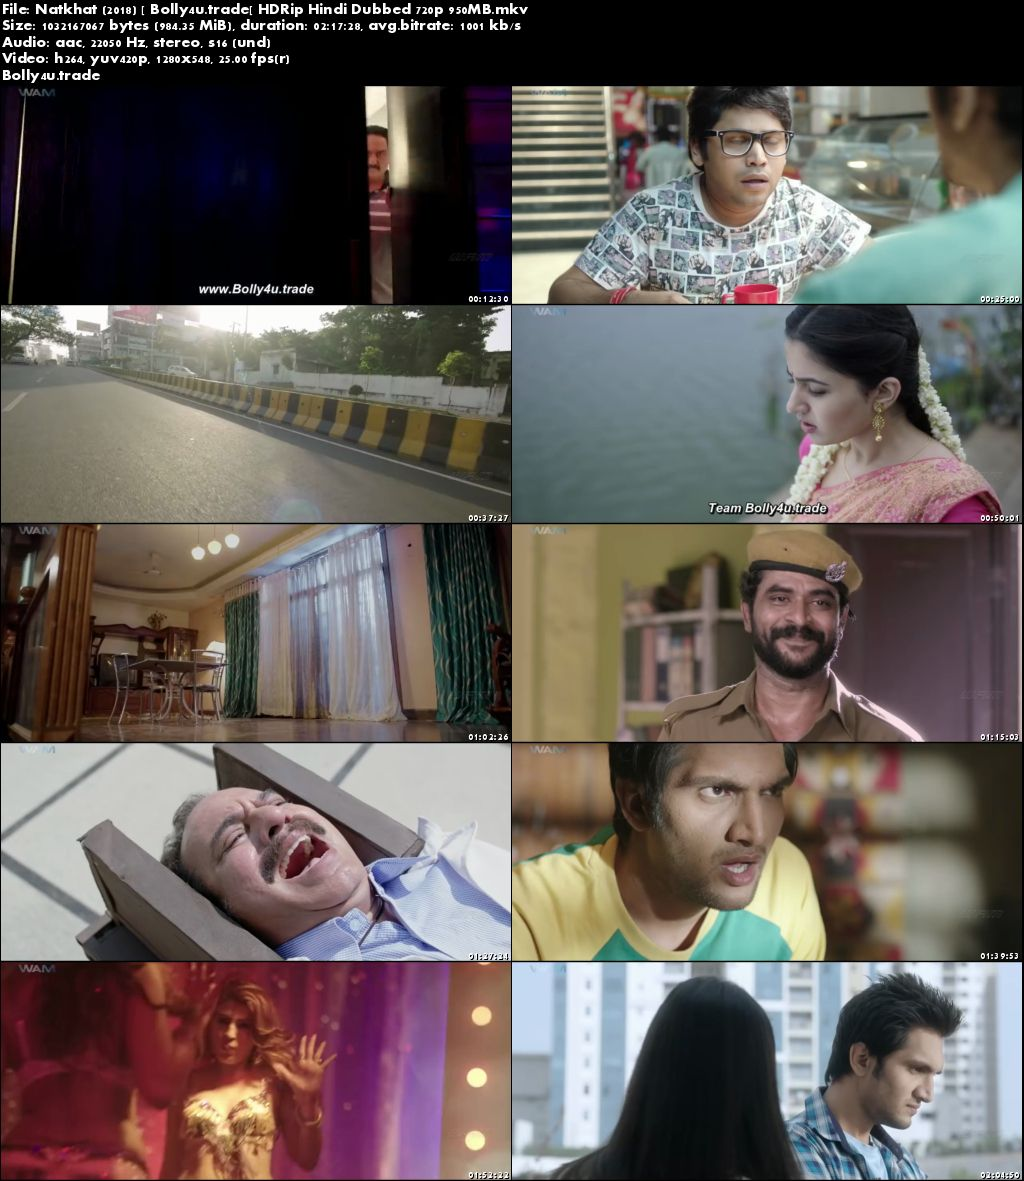 Natkhat 2018 HDRip 400Mb Full Hindi Dubbed Movie Download 480p